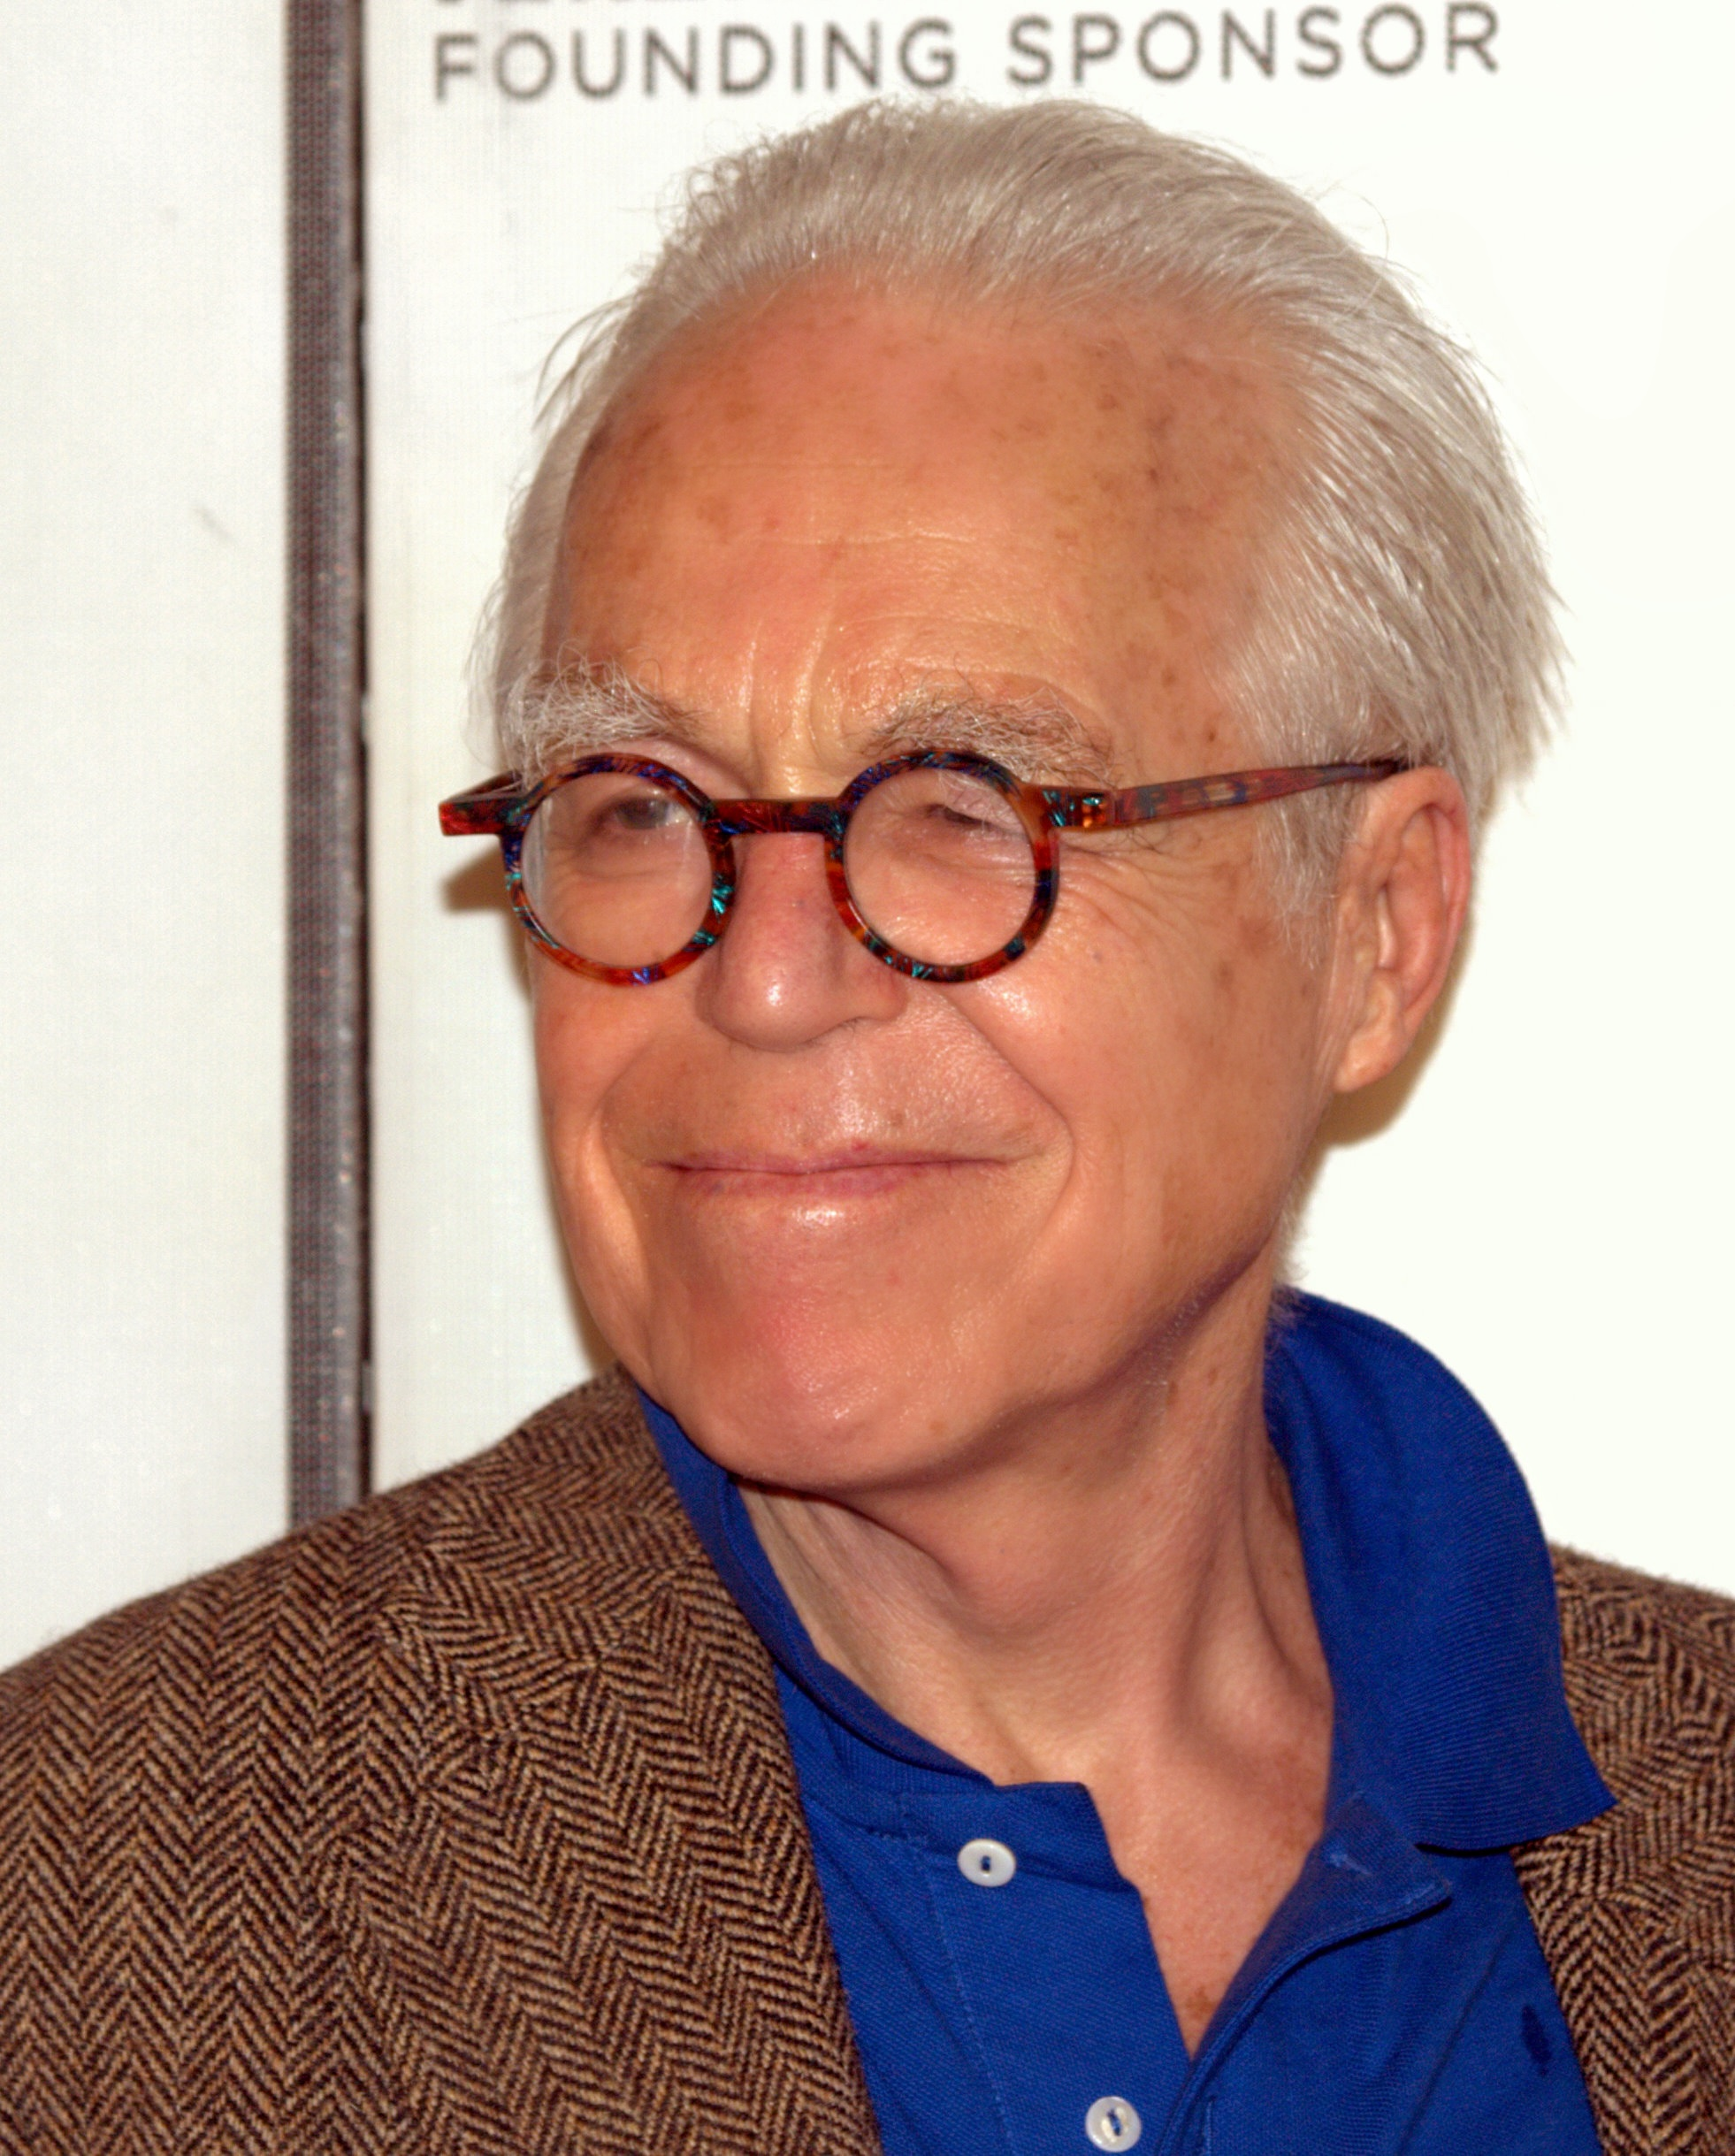 Photo of John Guare